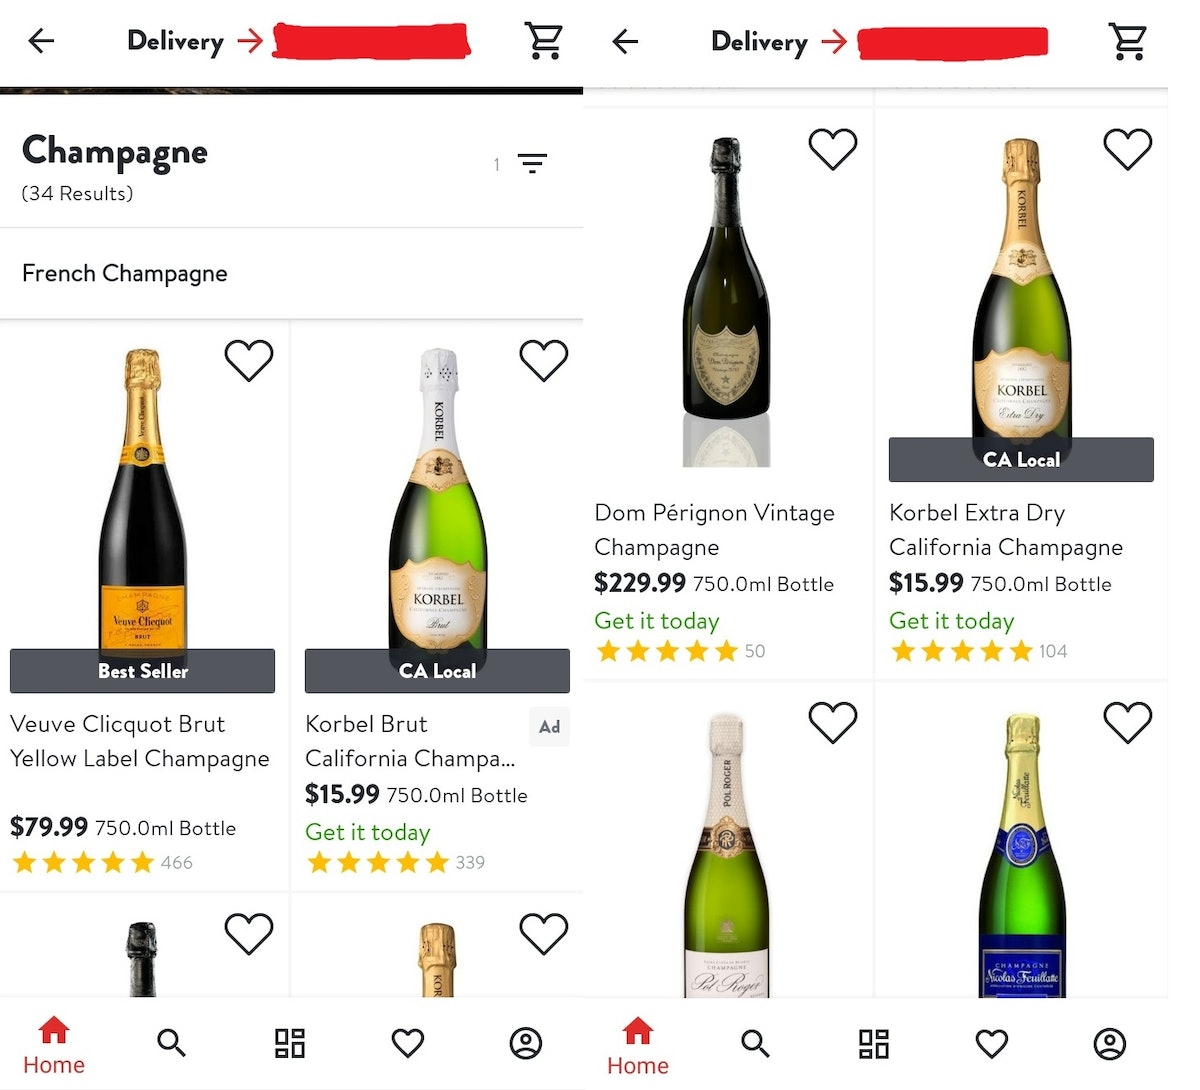 Here's how to get champagne delivered on New Year's Eve for an easy shopping trip.